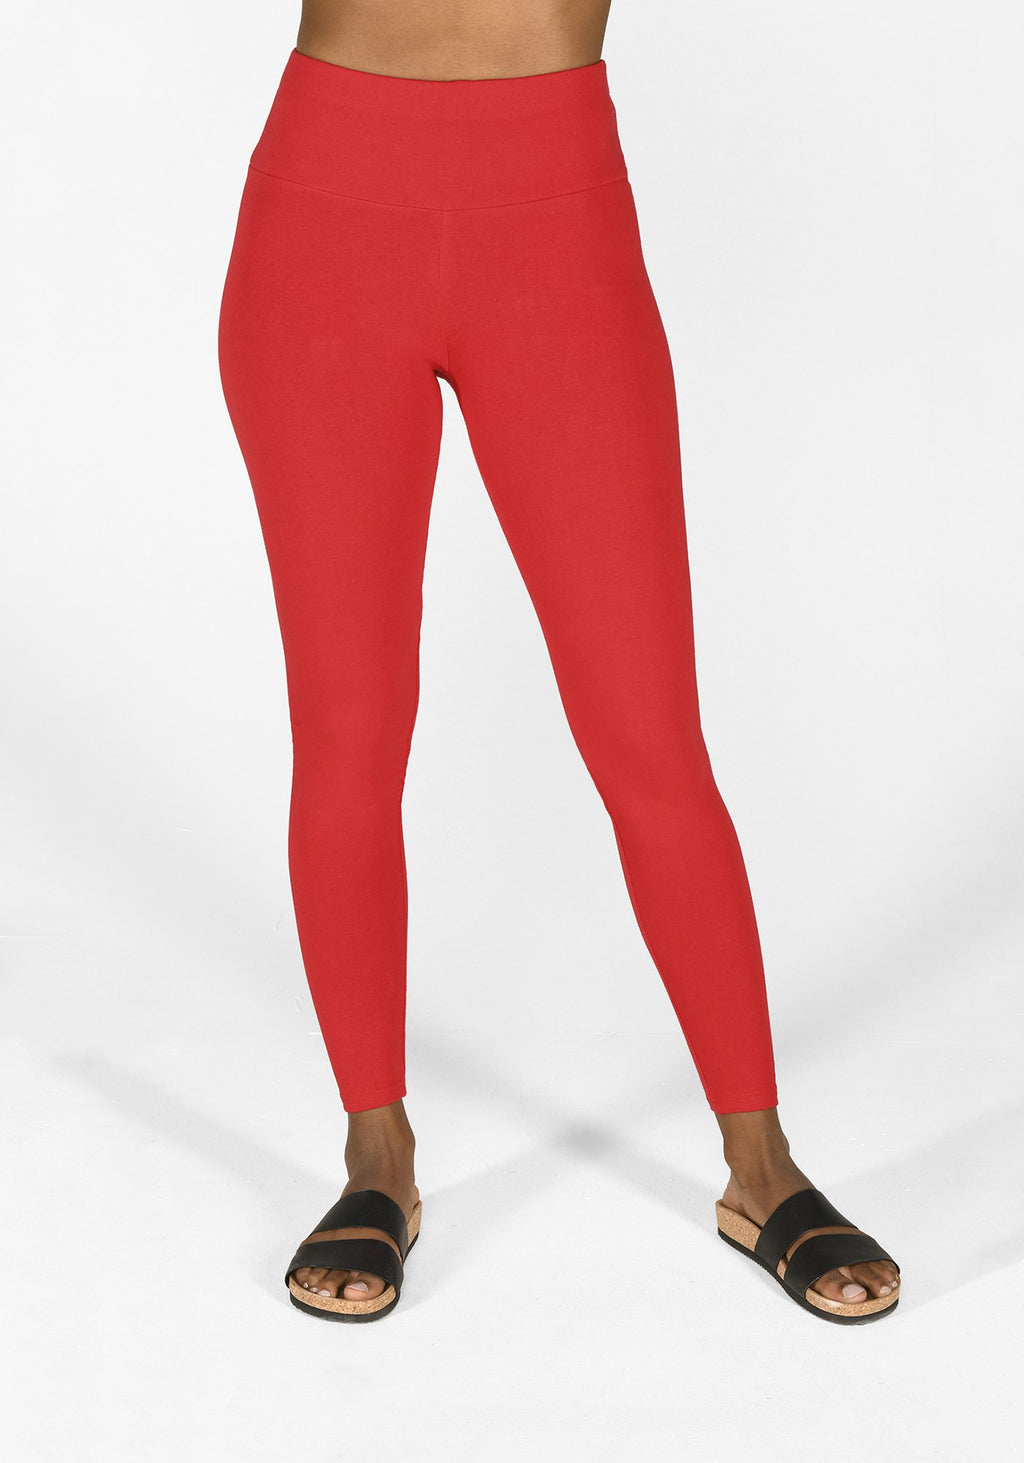 poppy red high waisted leggings 1